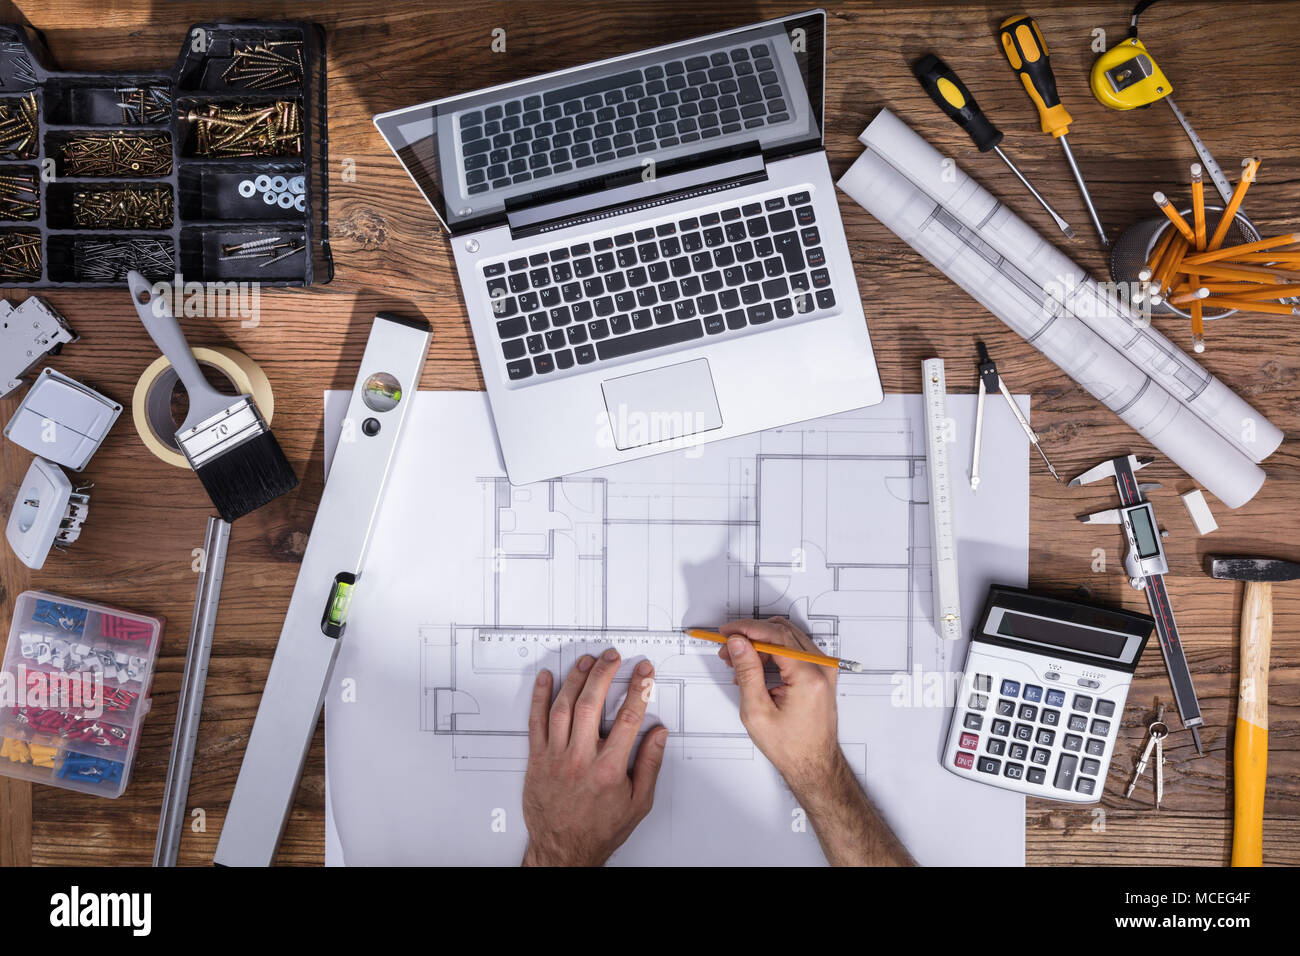 Architecture's Hand Drawing Blueprint With Laptop On Wooden Desk - Stock Image